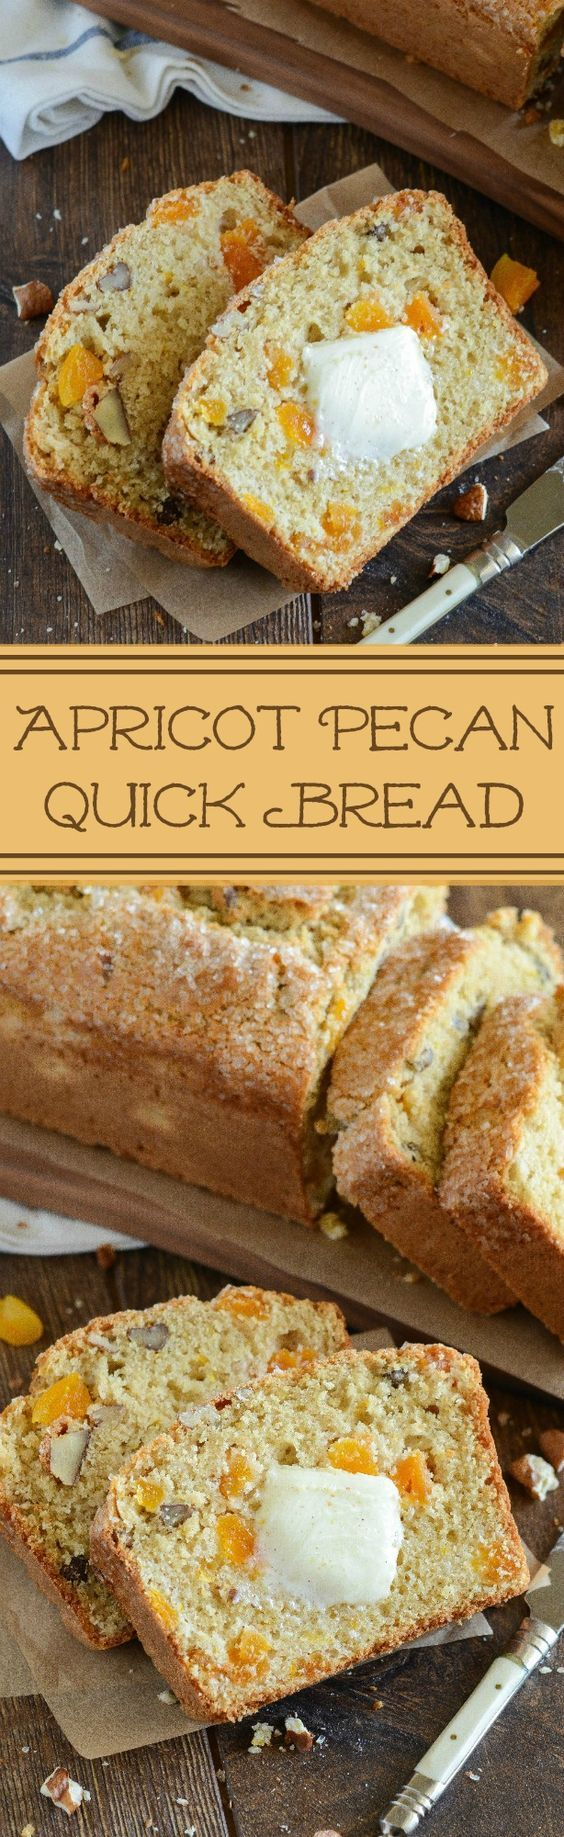 Apricot Pecan Bread Apricot Recipes Bread Recipes Homemade Quick Bread